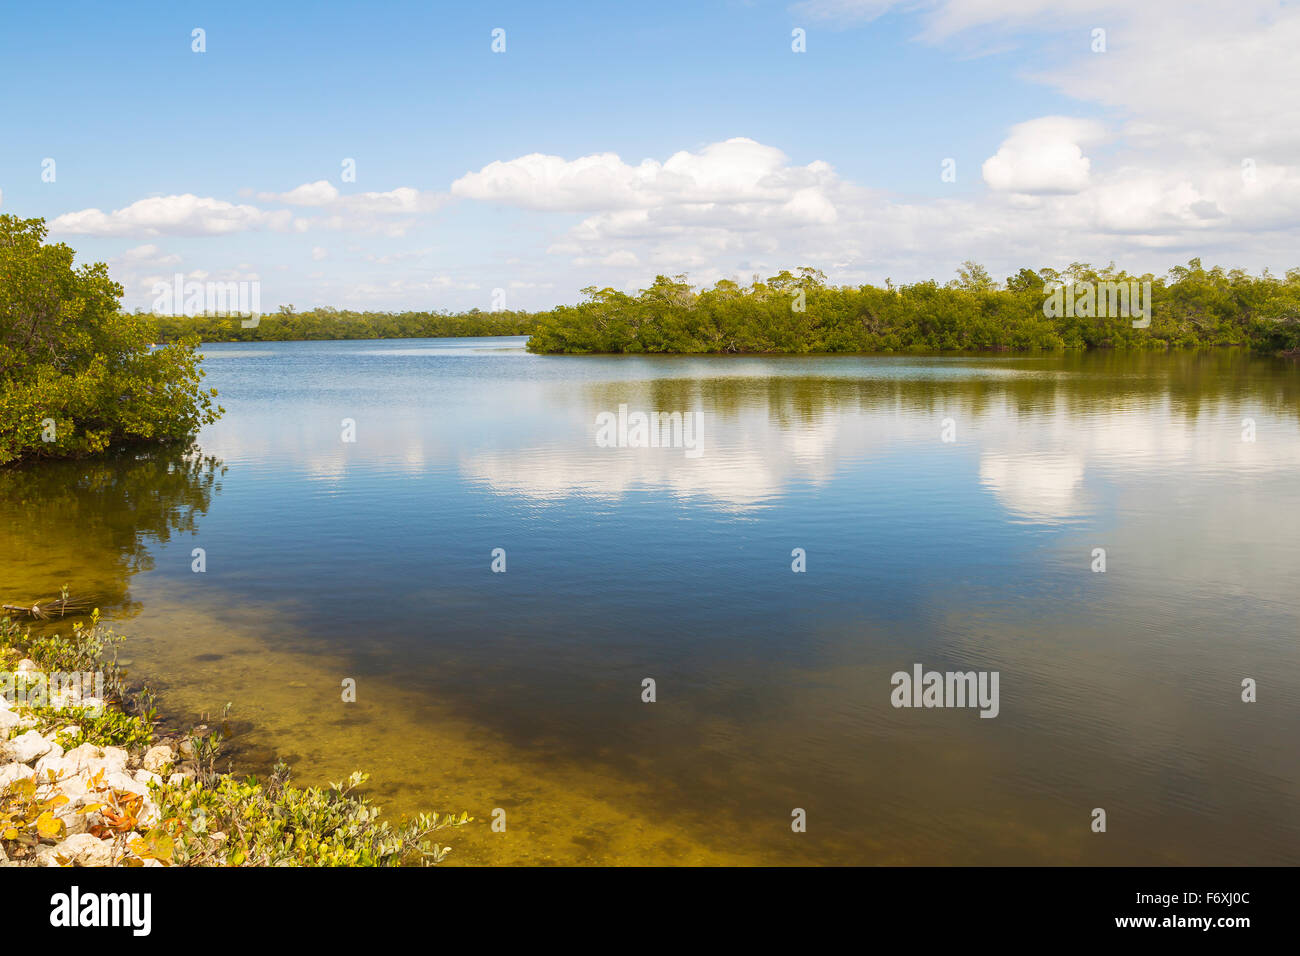 Lake in the Ding Darling National Wildlife Refuge, Sanibel Iceland, Florida, USA - Stock Image